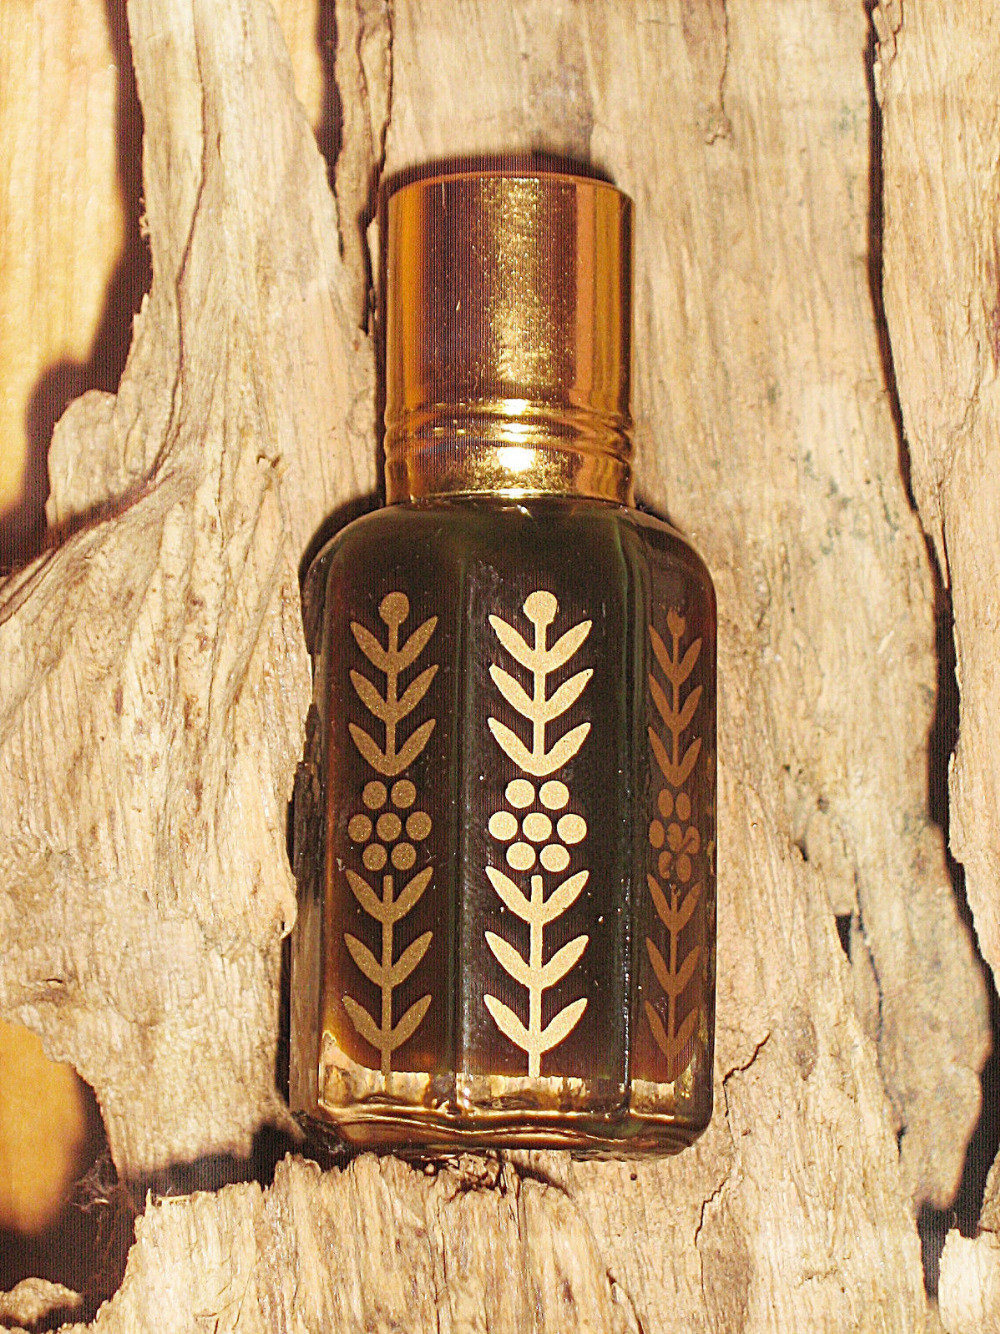 12ml Indian Agarwood Dehnul Oud Oudh Attar Perfume Oil